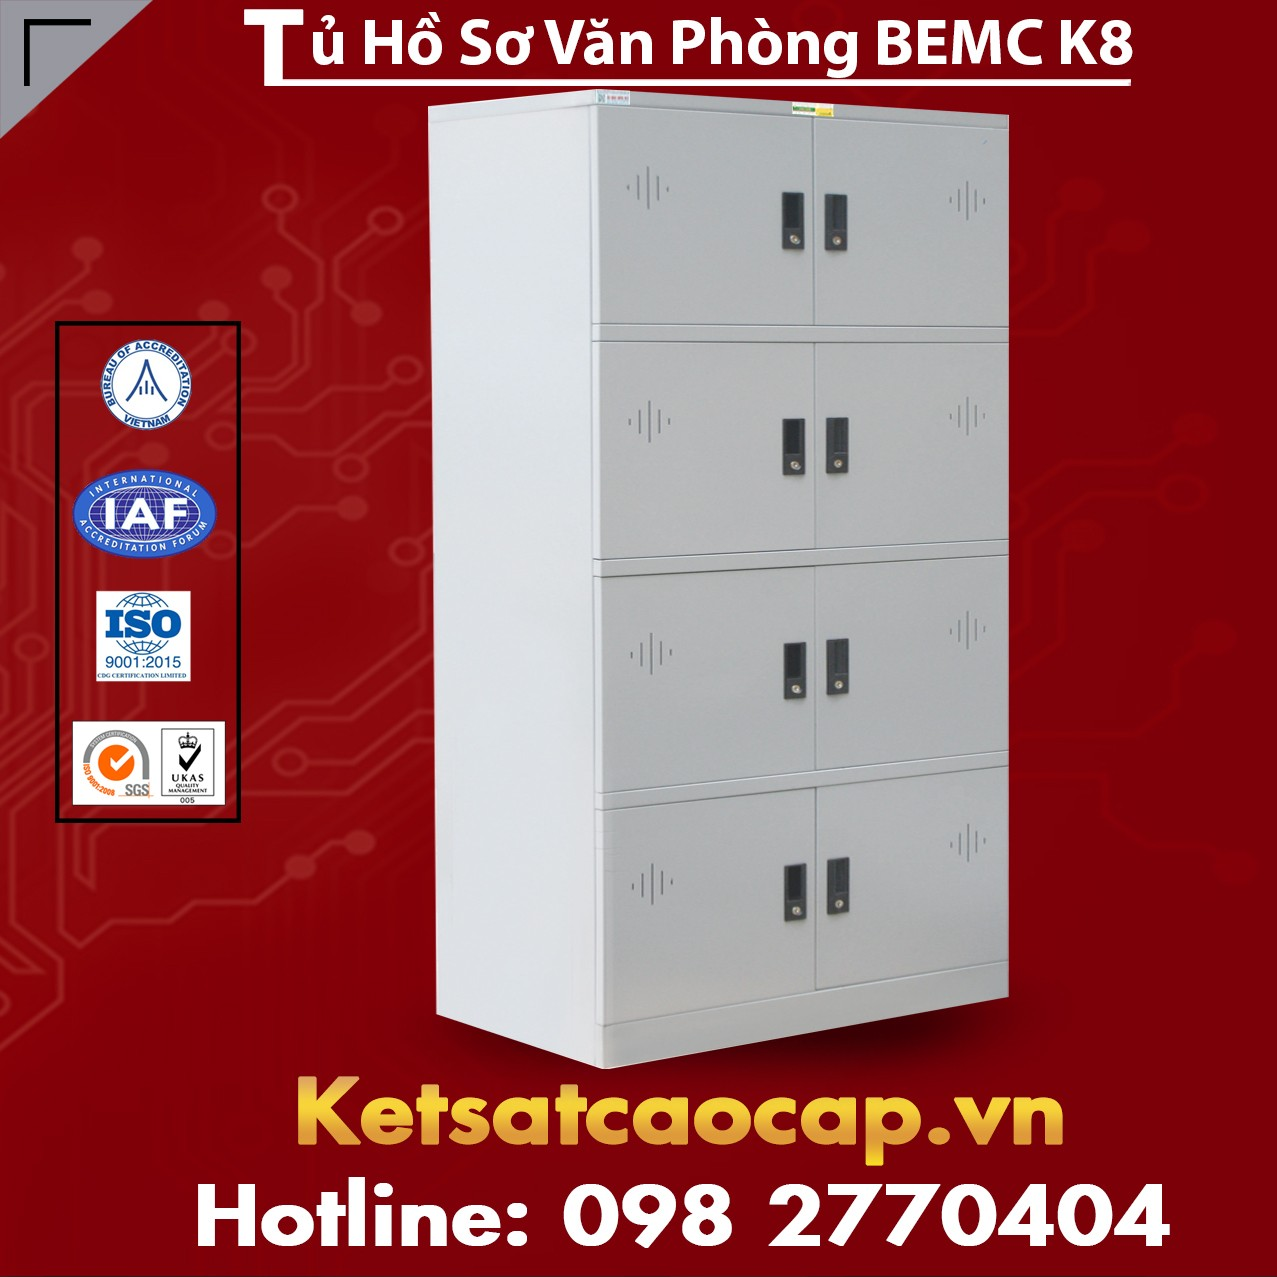 tu locker dung ho so van phong